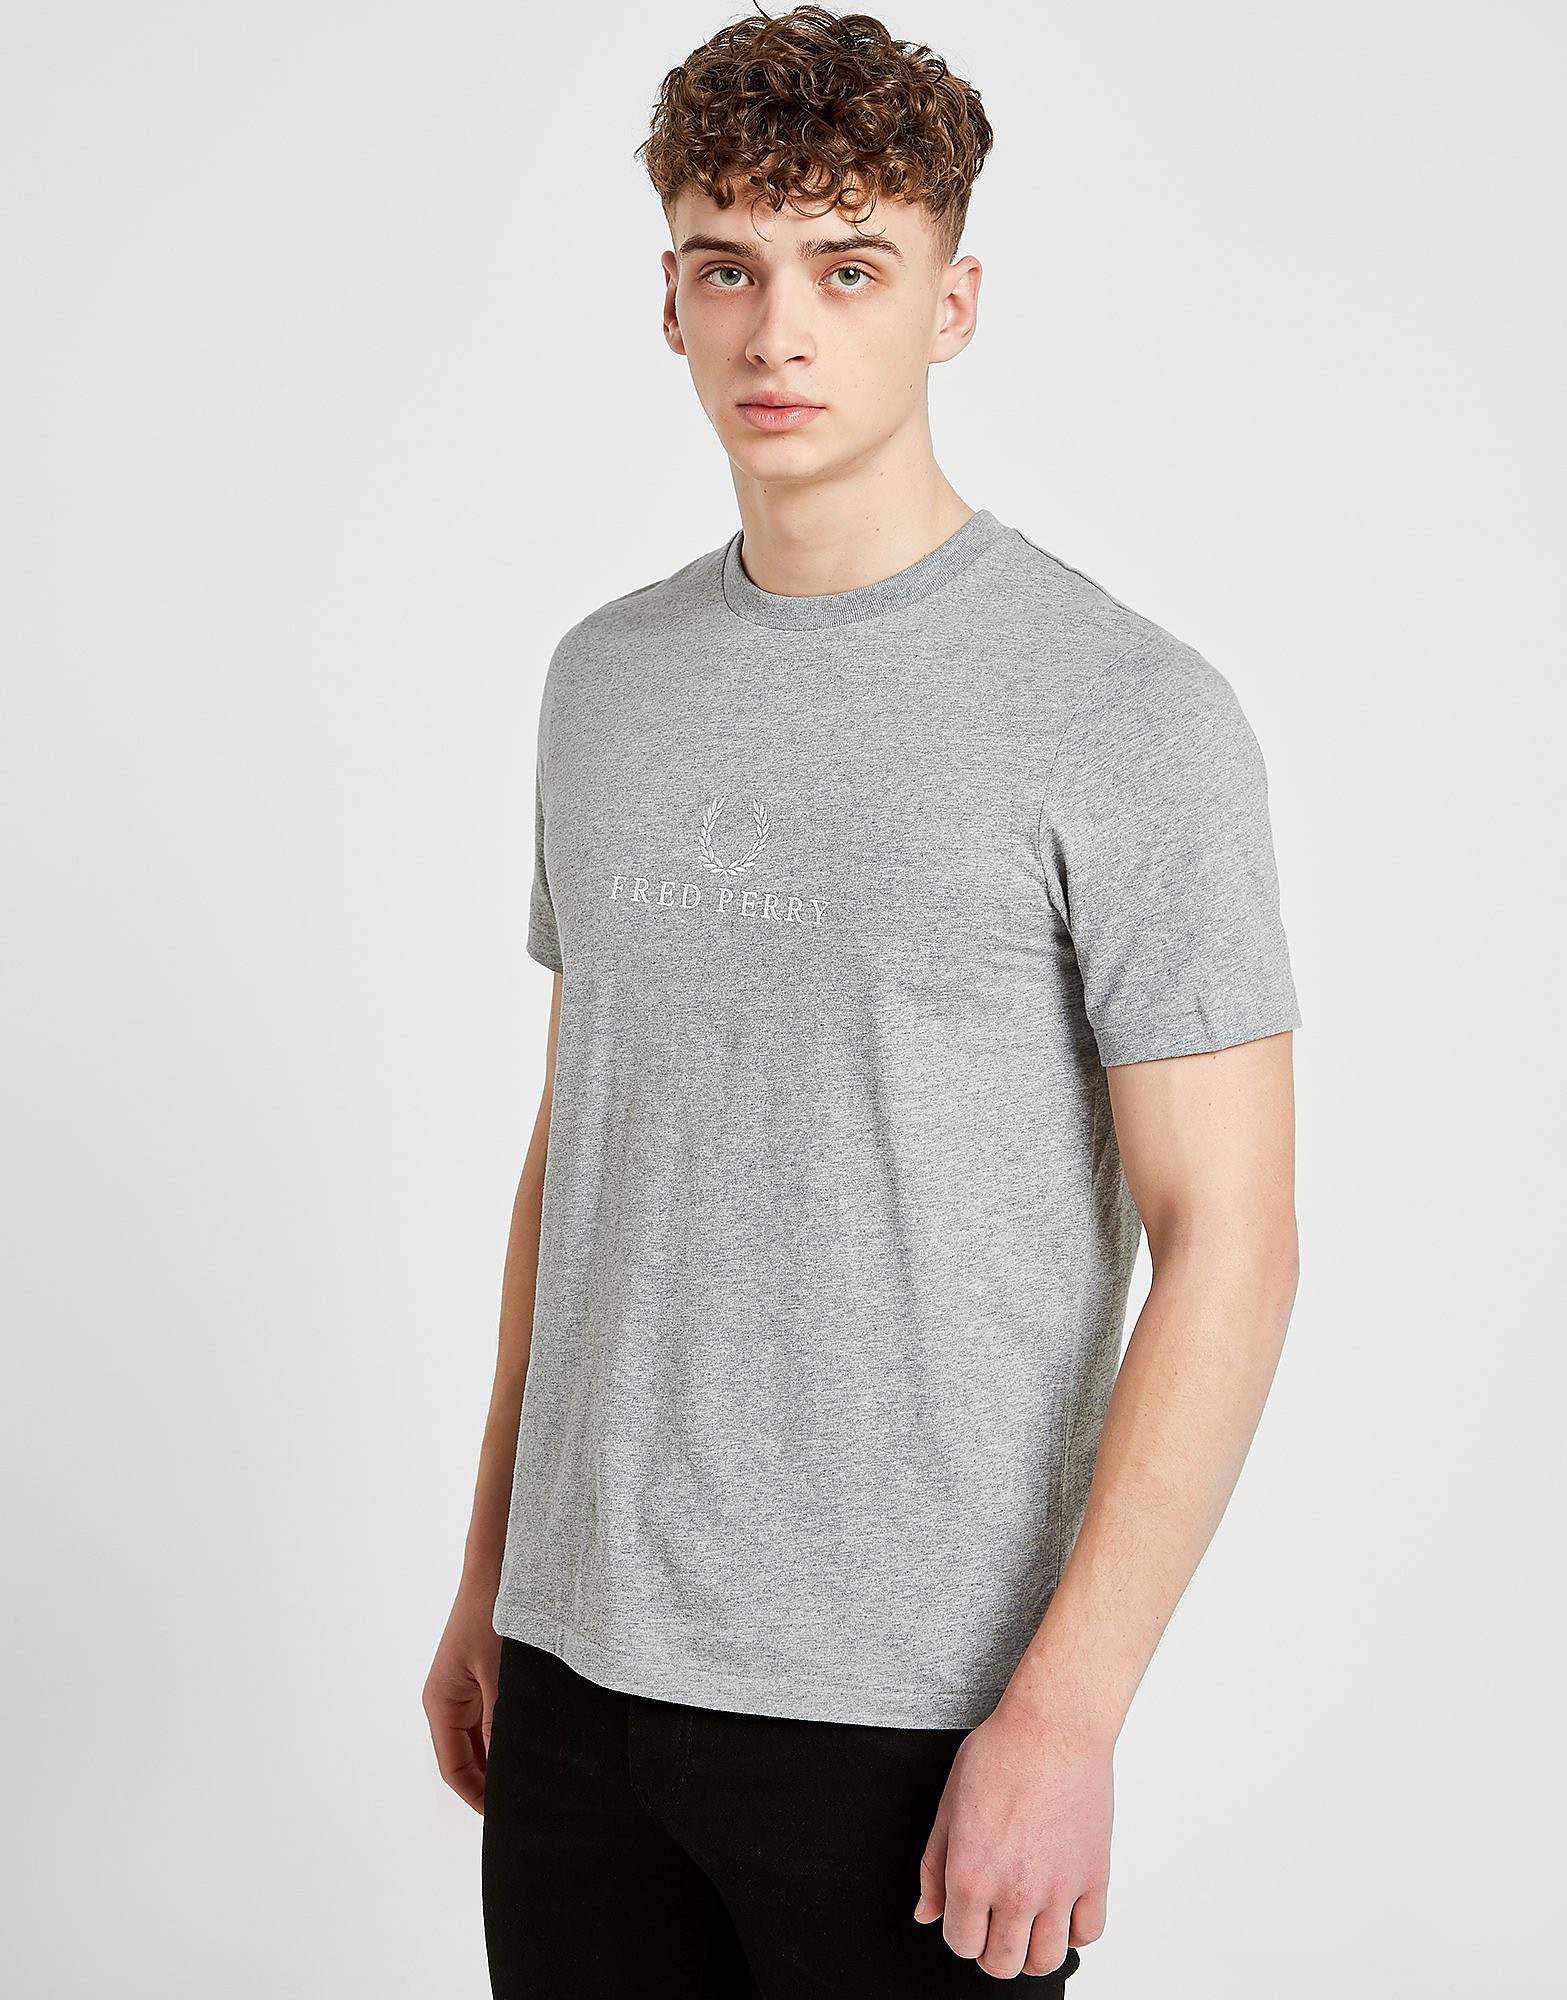 Fred Perry Embroidered T-Shirt - Grijs - Heren